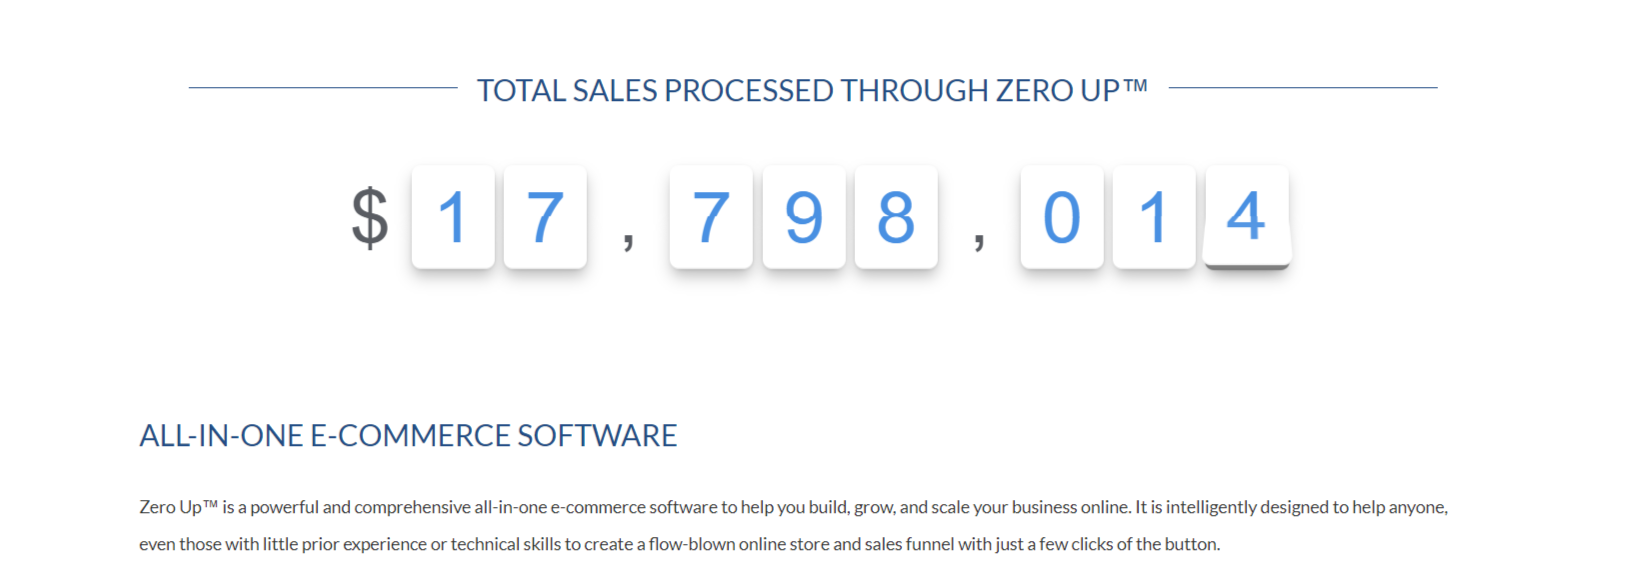 ZeroUp Review- TOTAL SALES PROCESSED THROUGH ZERO UP™